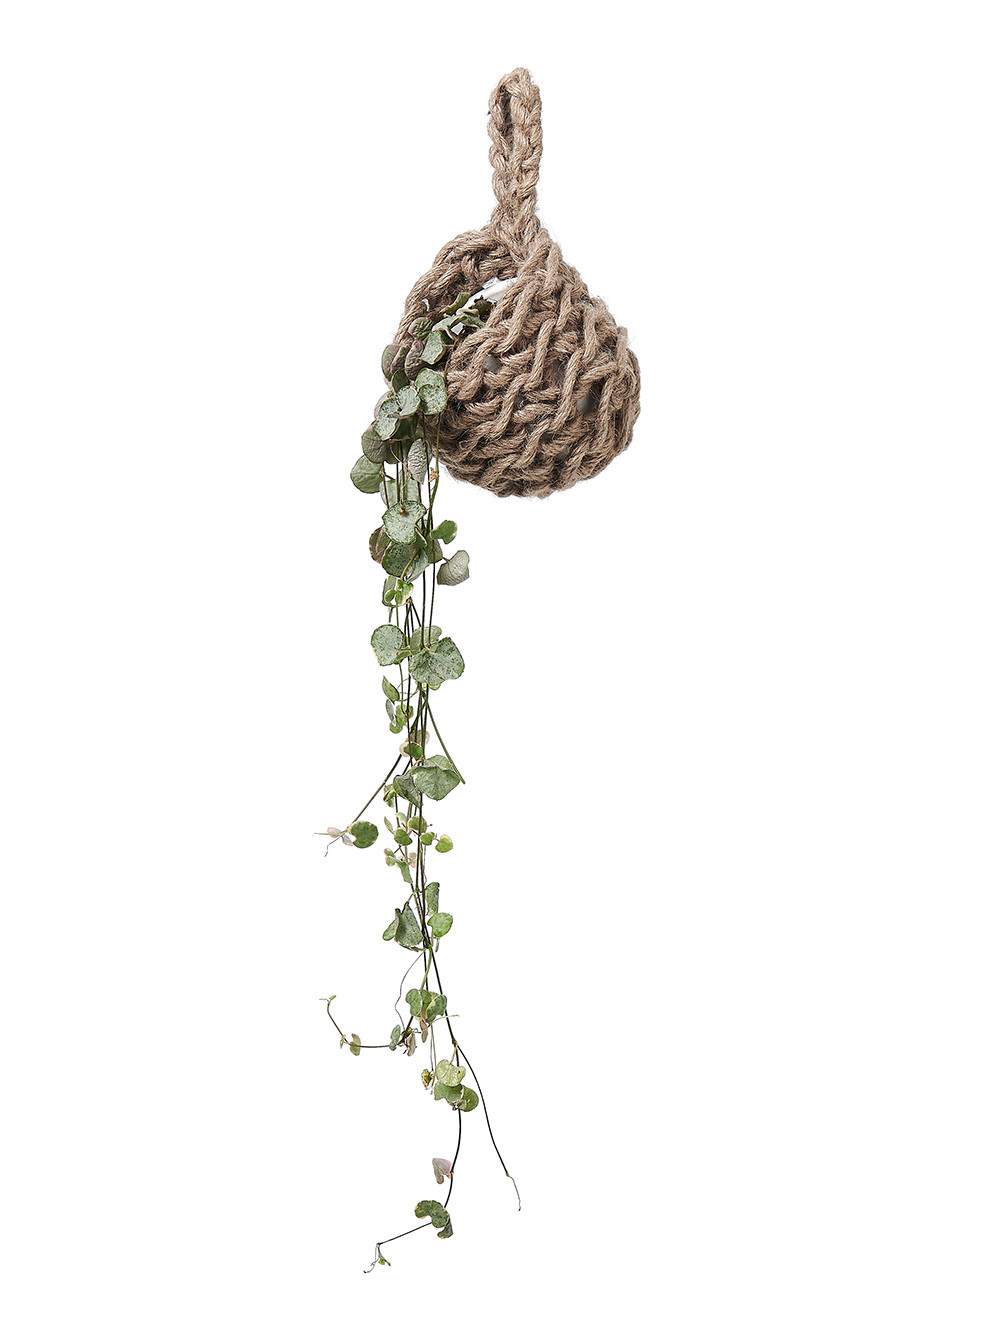 Homeware photography of a mini macrame planter & house plant